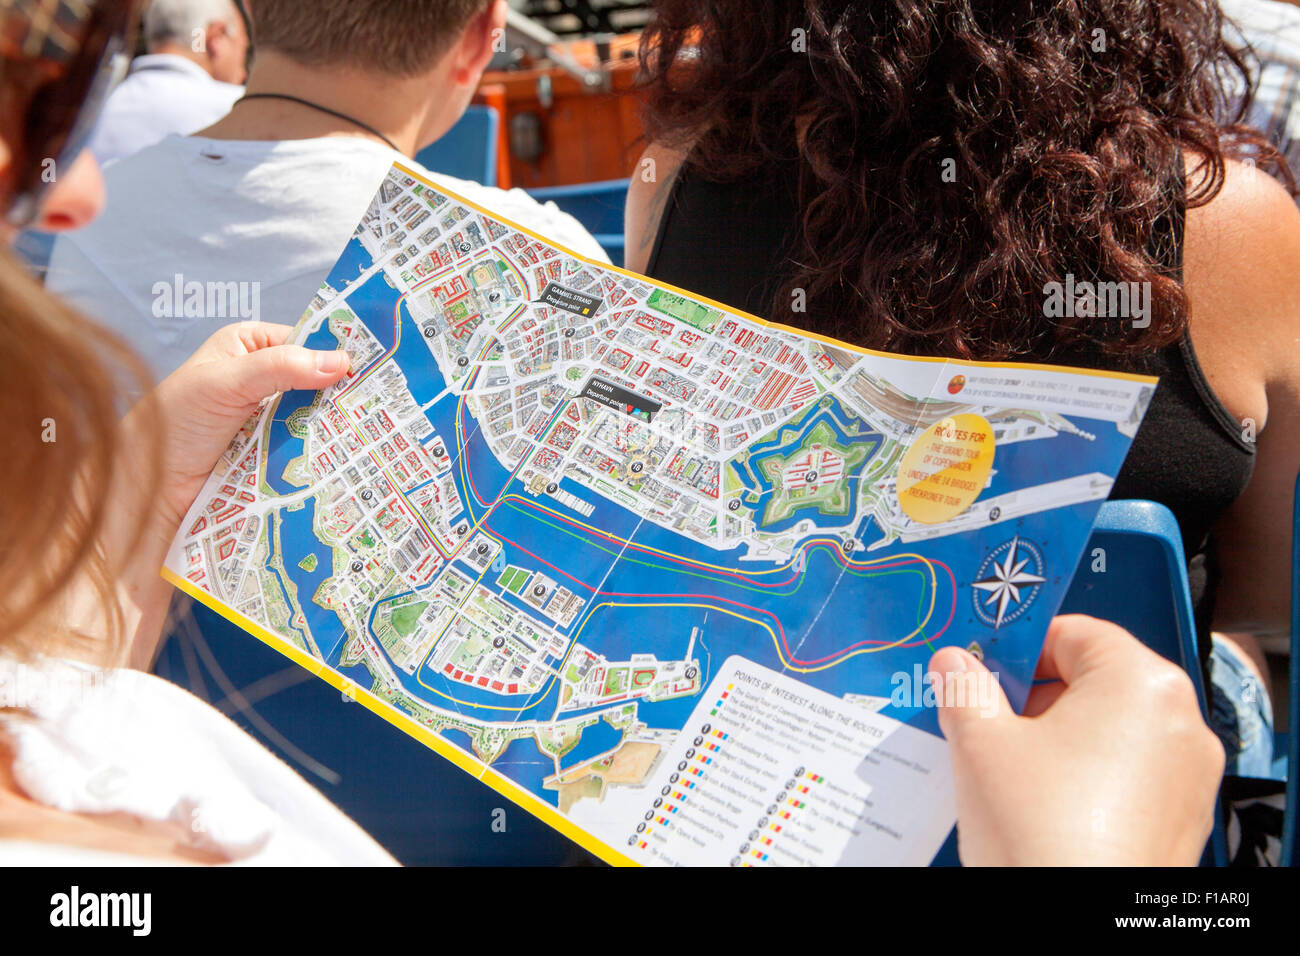 Female tourist reading a map of Nyhavn waterfront, canal and entertainment district in Copenhagen, Denmark - Stock Image